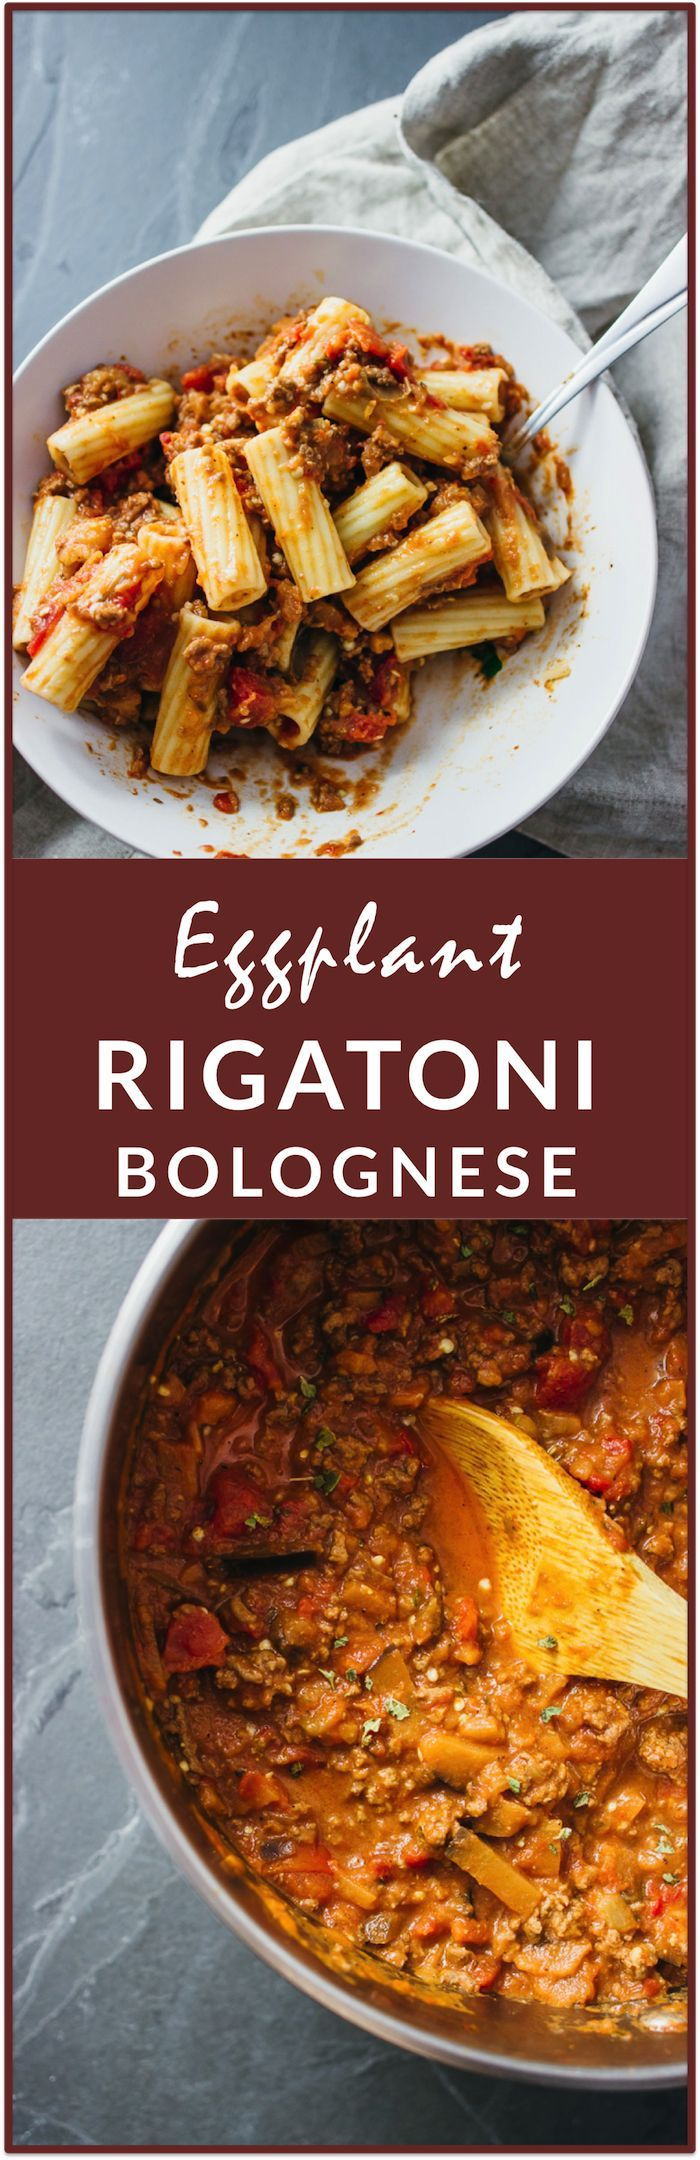 Simple hearty rigatoni bolognese with eggplant - This is a tasty weeknight dinner recipe for rigatoni bolognese with eggplant. It's simple to make and it's the ultimate comfort food with thick rigatoni pasta, ground beef, eggplant slices, and a rich orange-red garlicky tomato sauce topped with oregano and parmesan cheese crumbles. | http://savorytooth.com